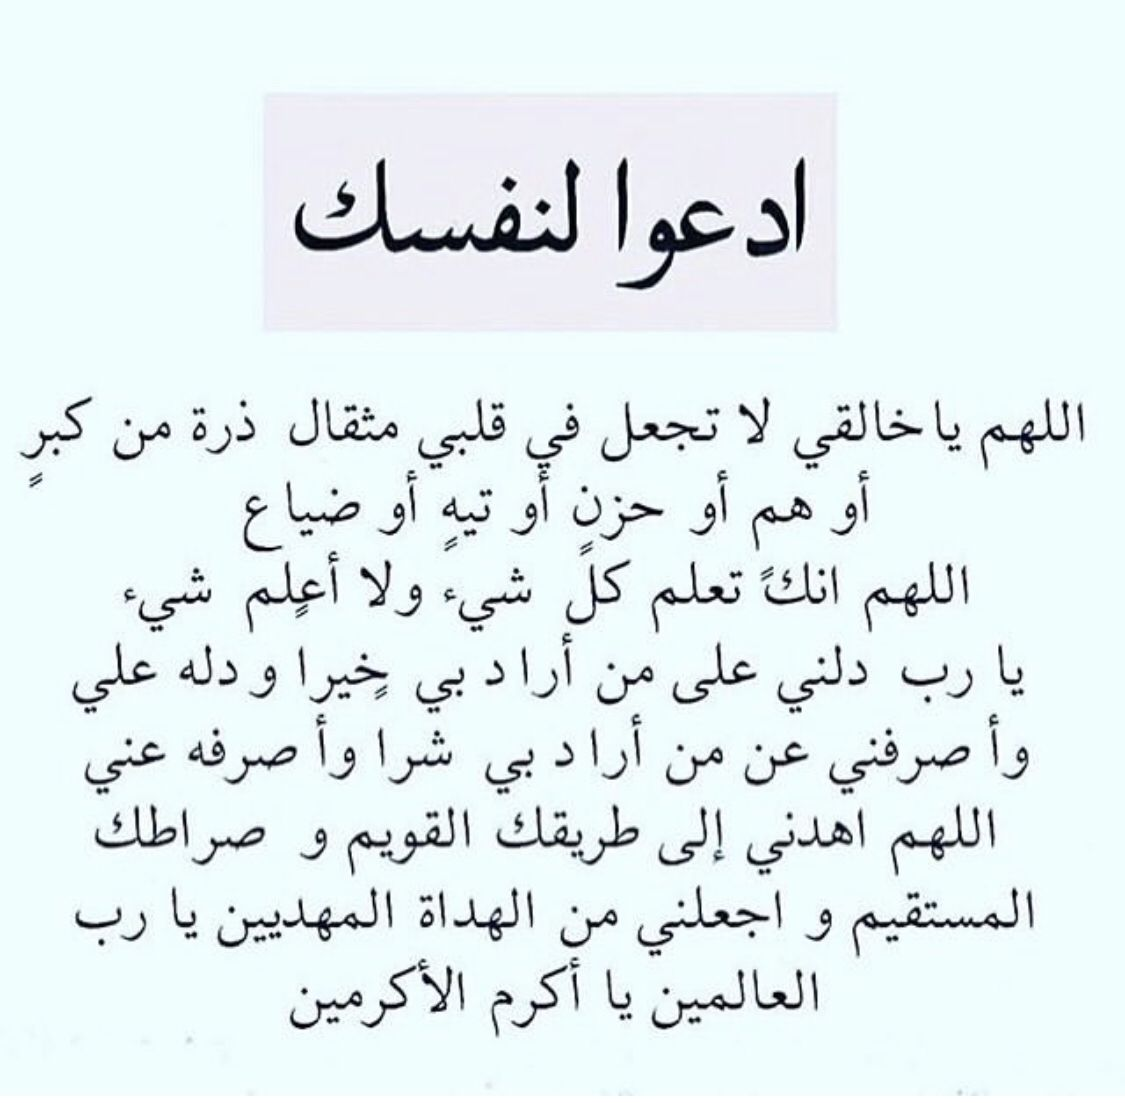 Pin By Amany El Zagh On Thikr After Salat Quran Quotes Love Beautiful Quran Quotes Islam Beliefs